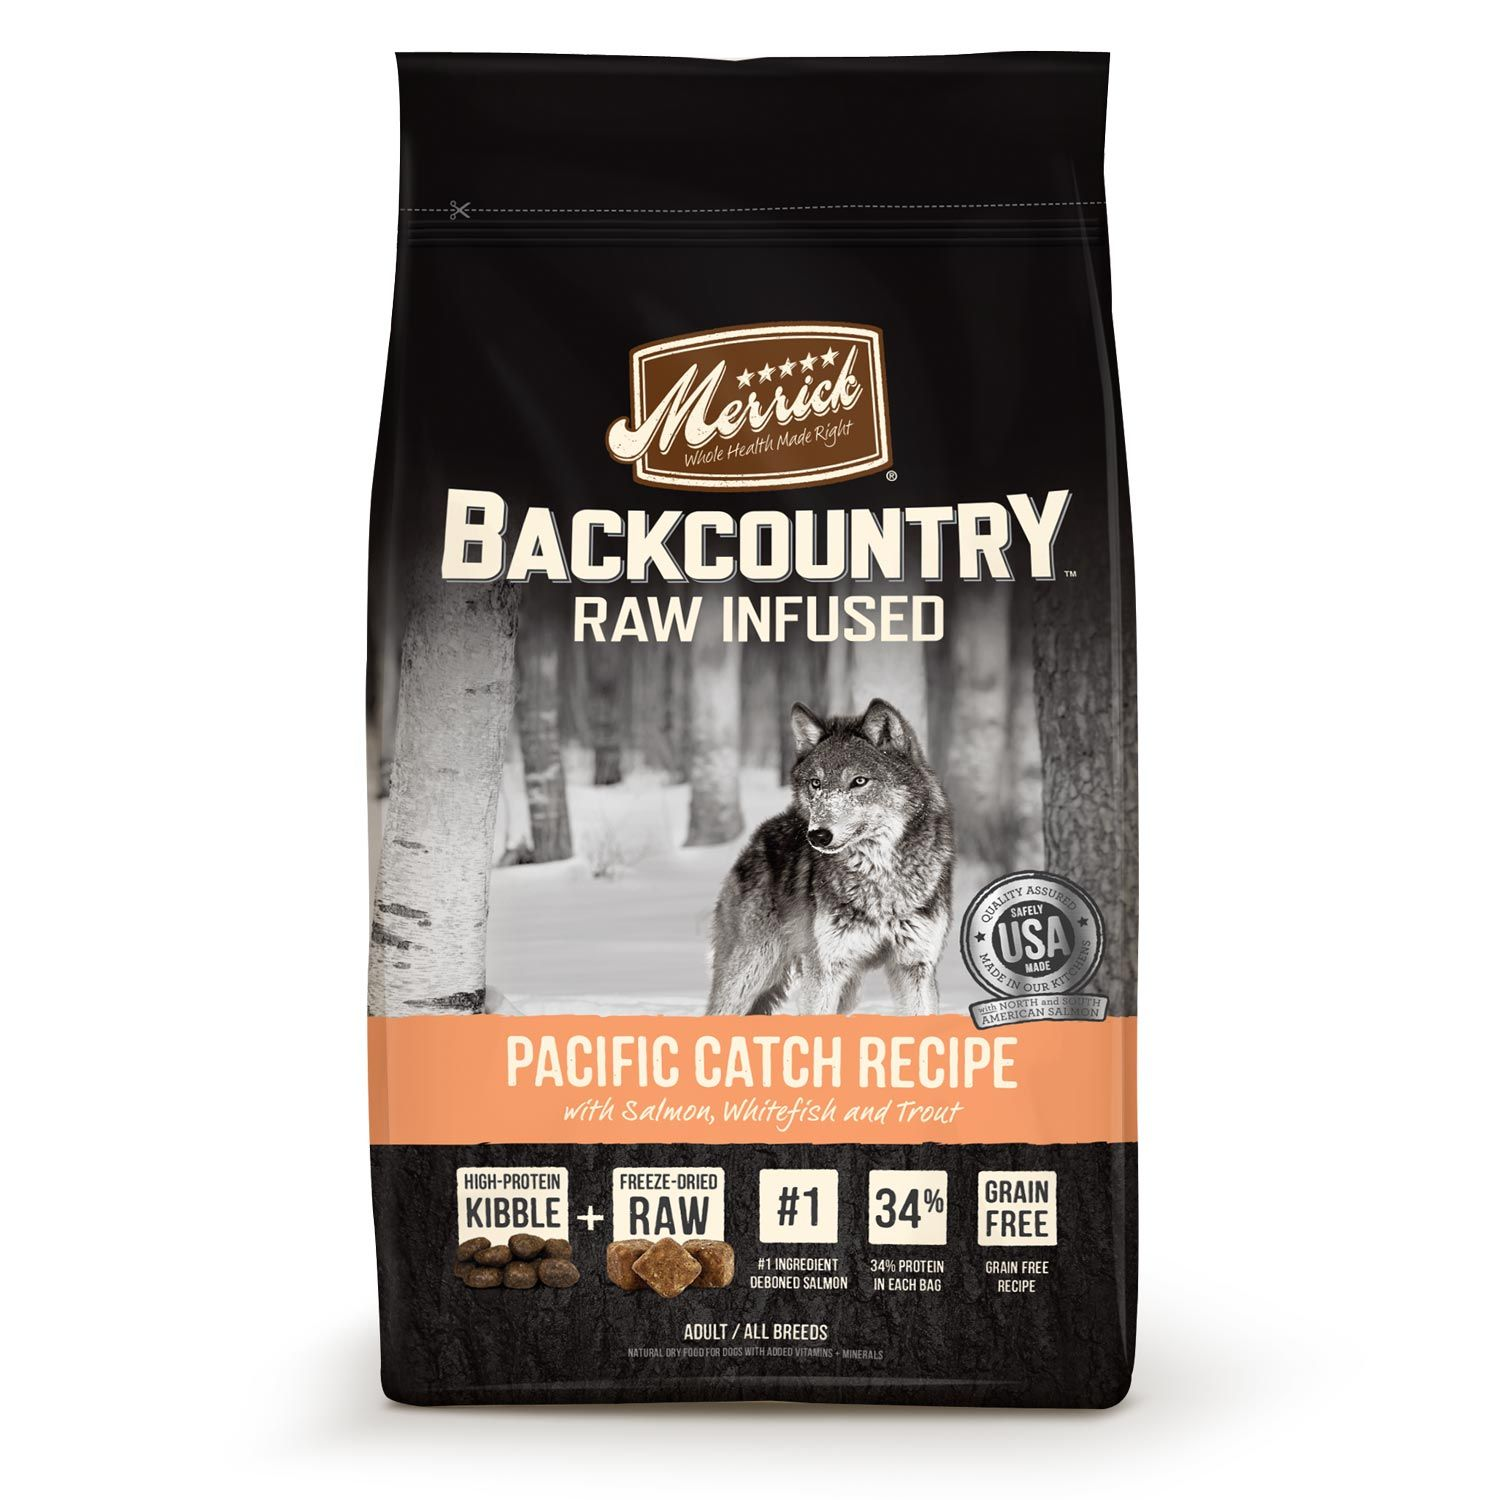 Merrick Backcountry Grain Free Raw Infused Pacific Catch Adult Dog